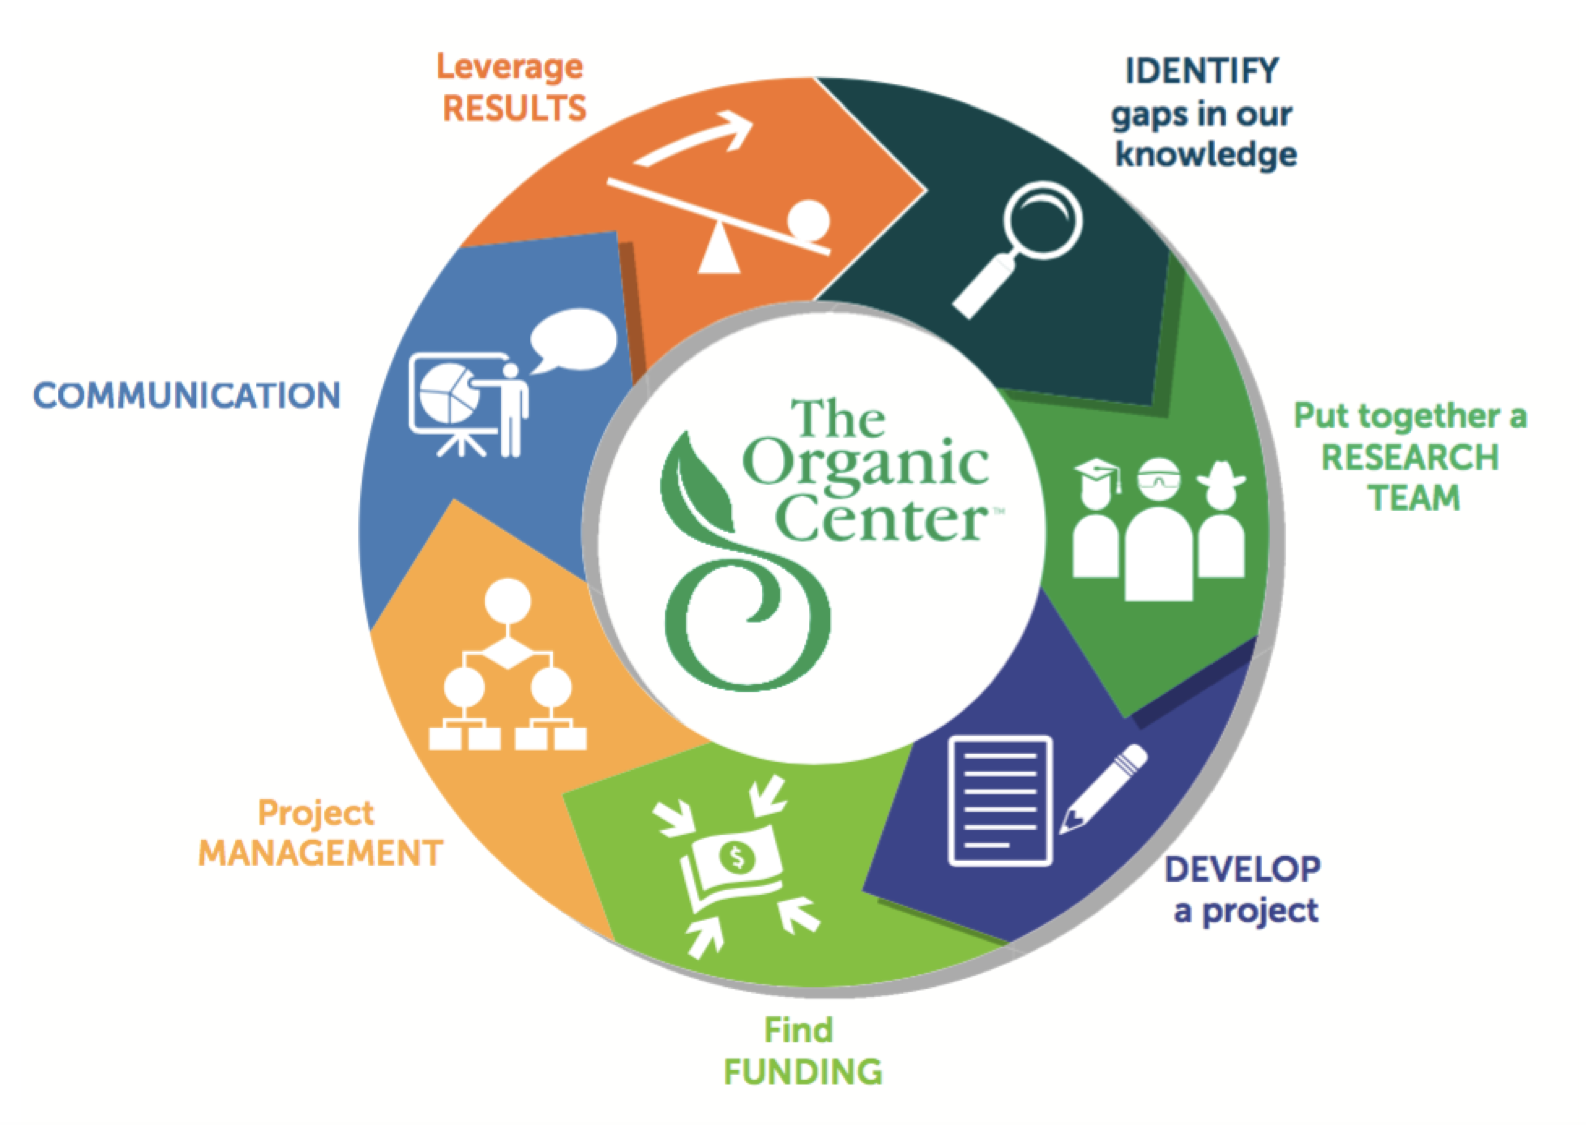 Harnessing the Power of Industry, Scientists and the Public to Advance Organic Through Research